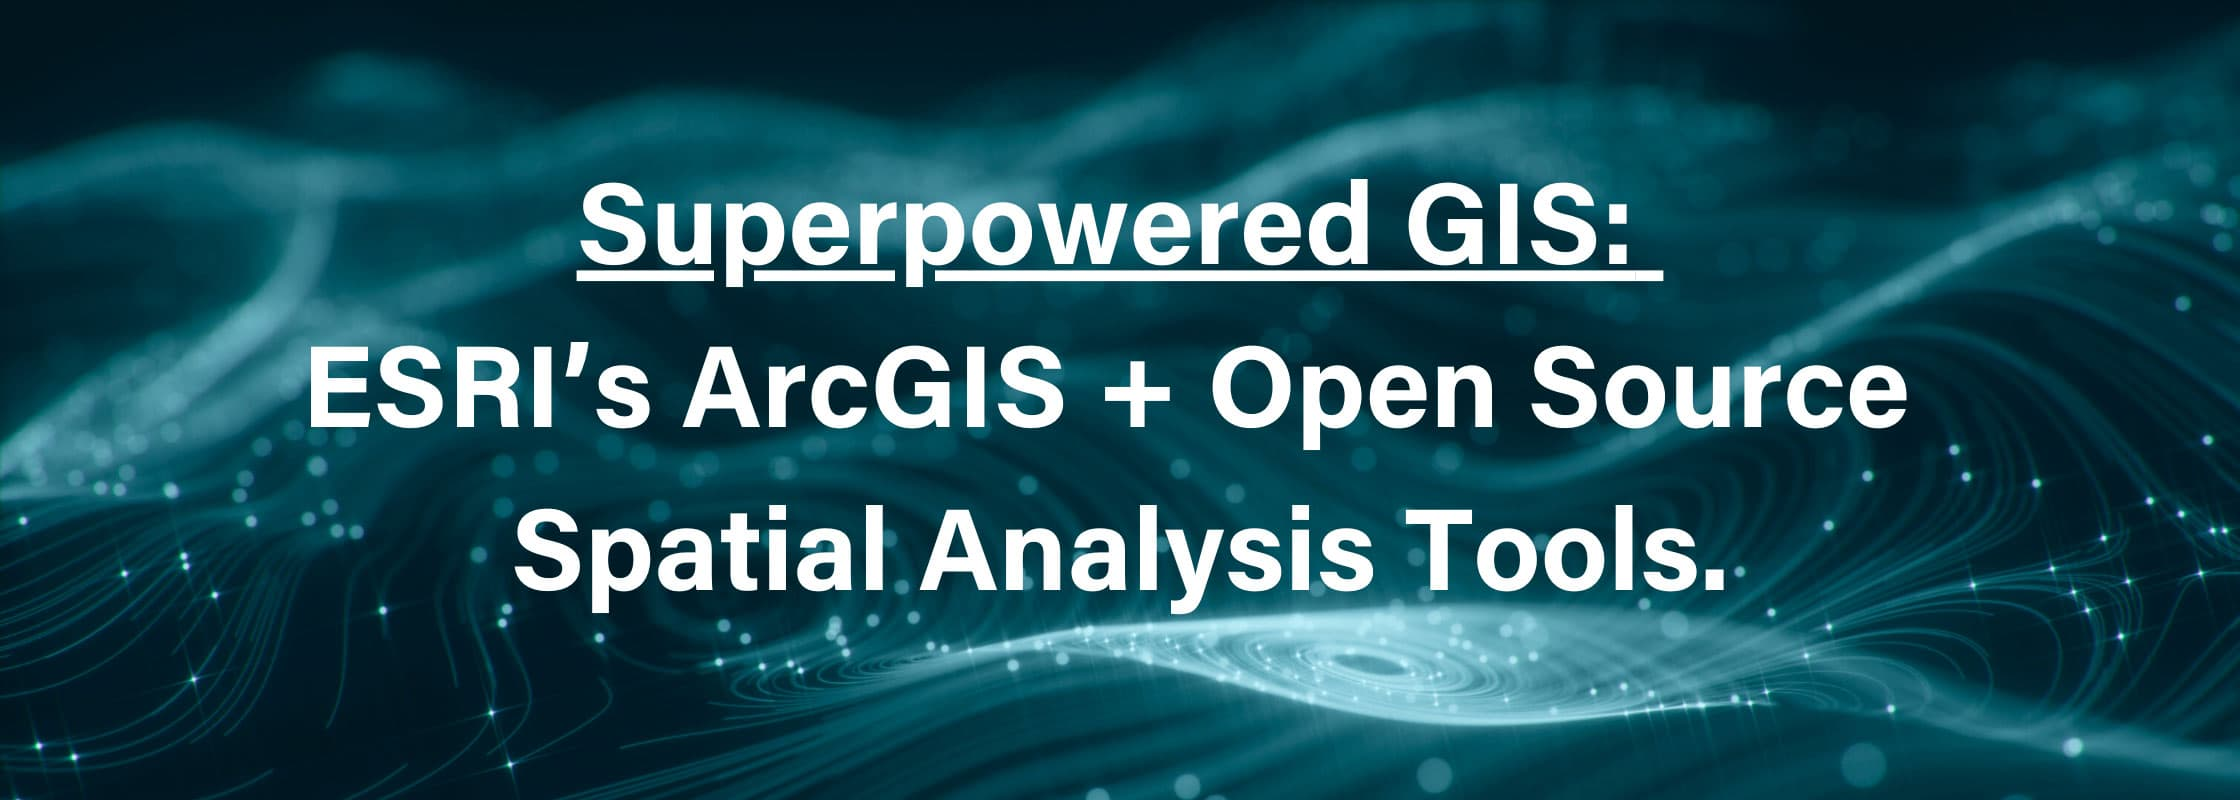 Superpowered GIS - ArcGIS and Open source spatial analysis tools